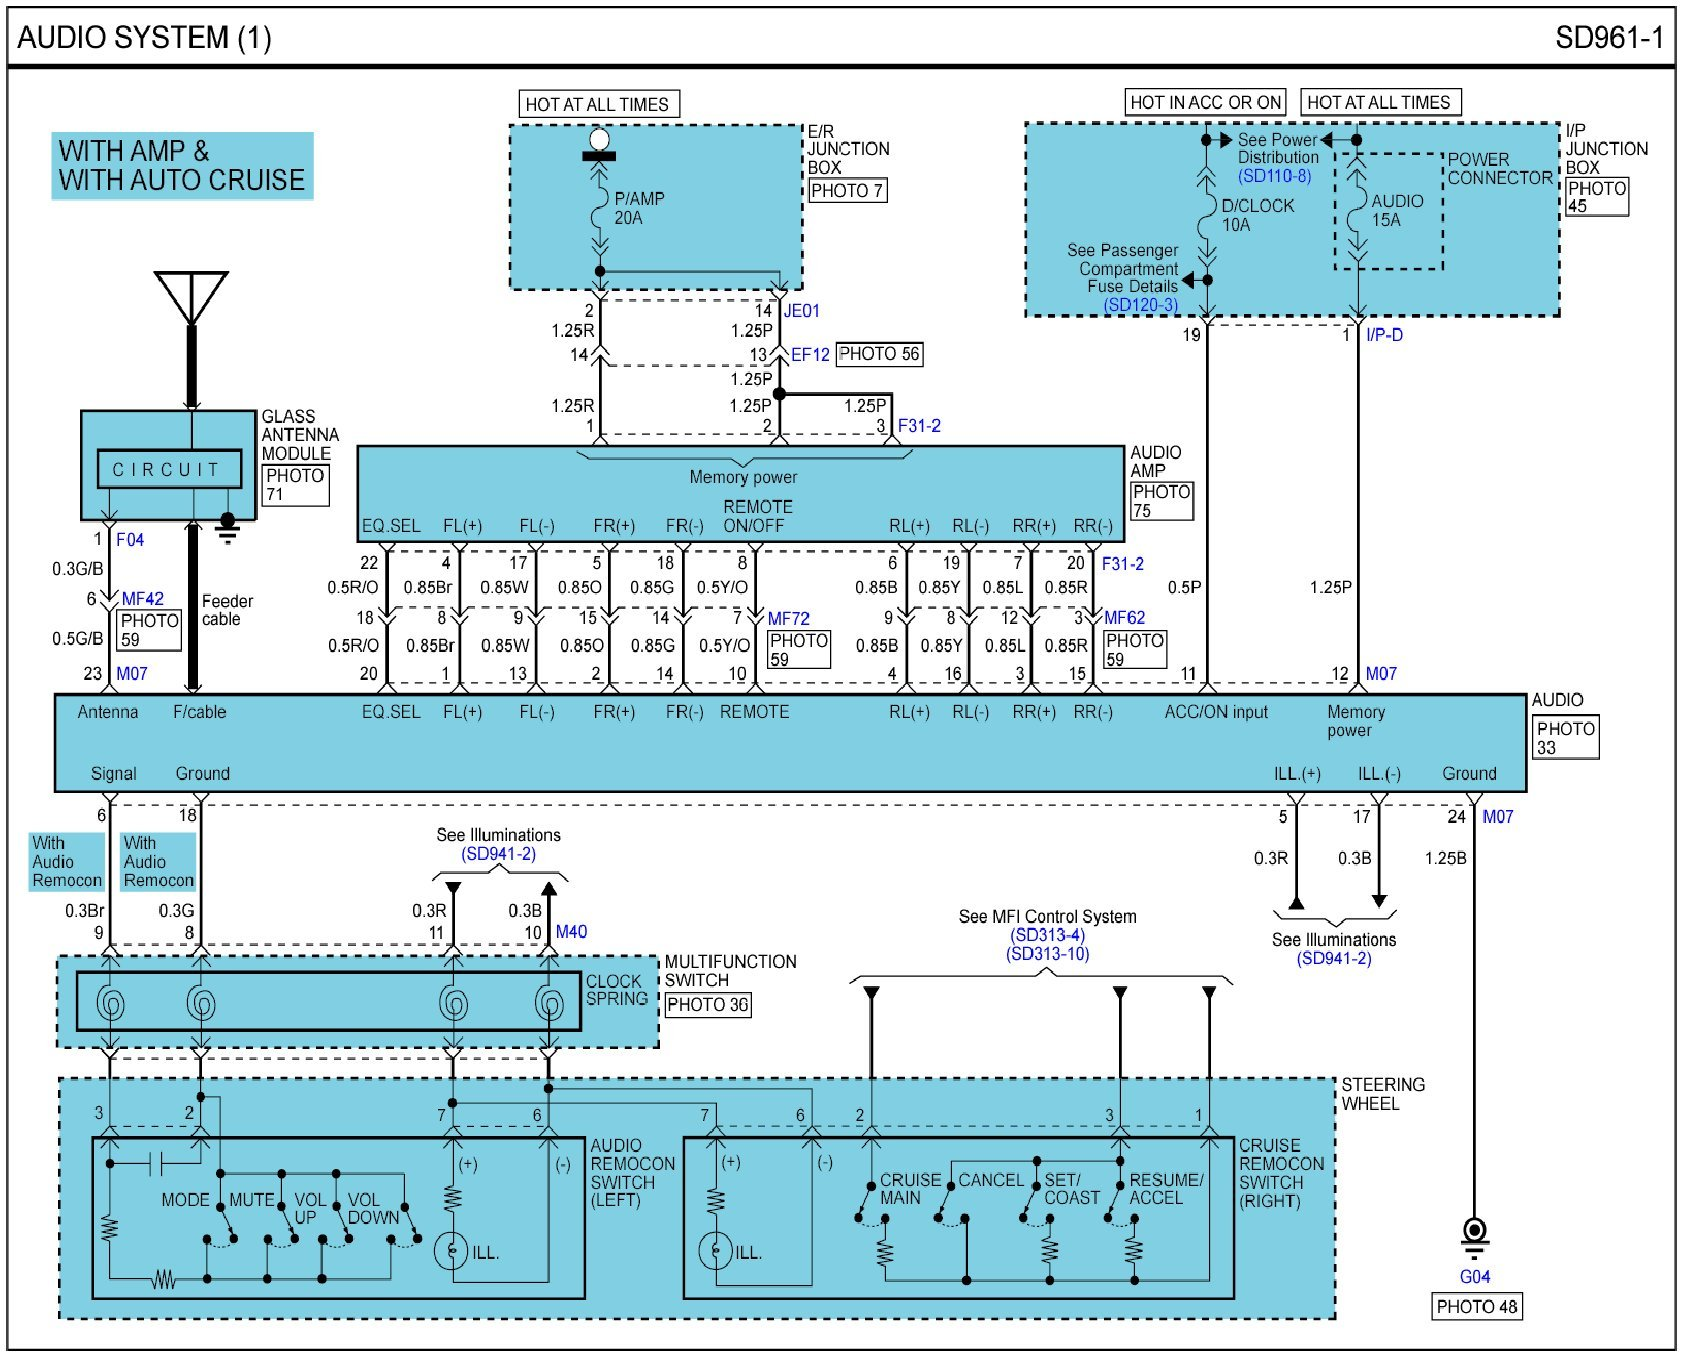 2005 Kia Amanti Wiring Diagram - WIRING CENTER •